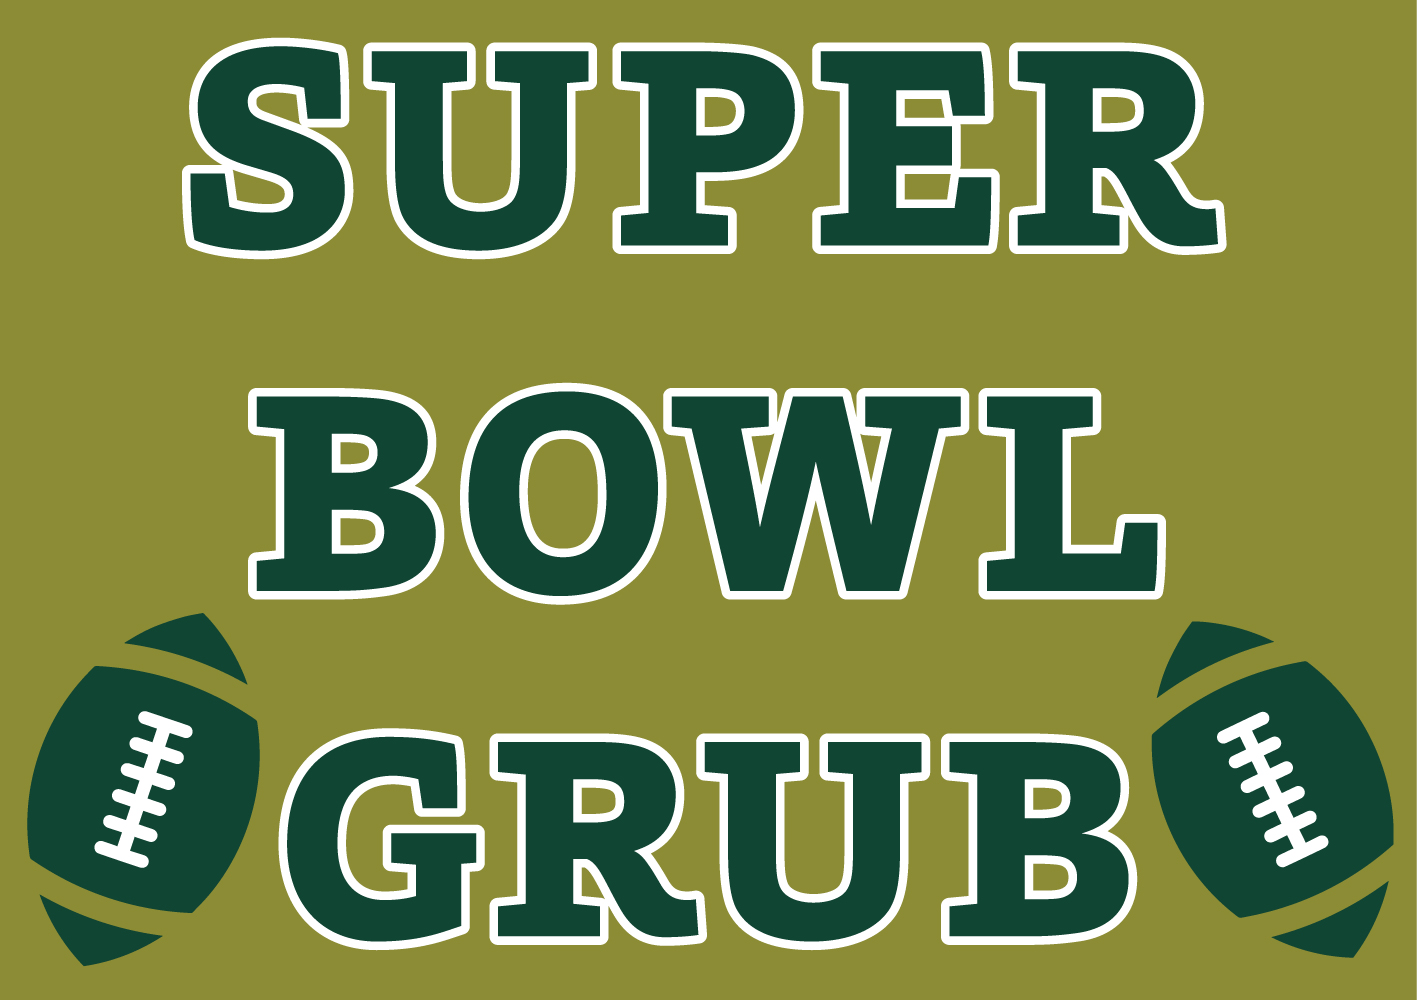 Super bowl webslider 01